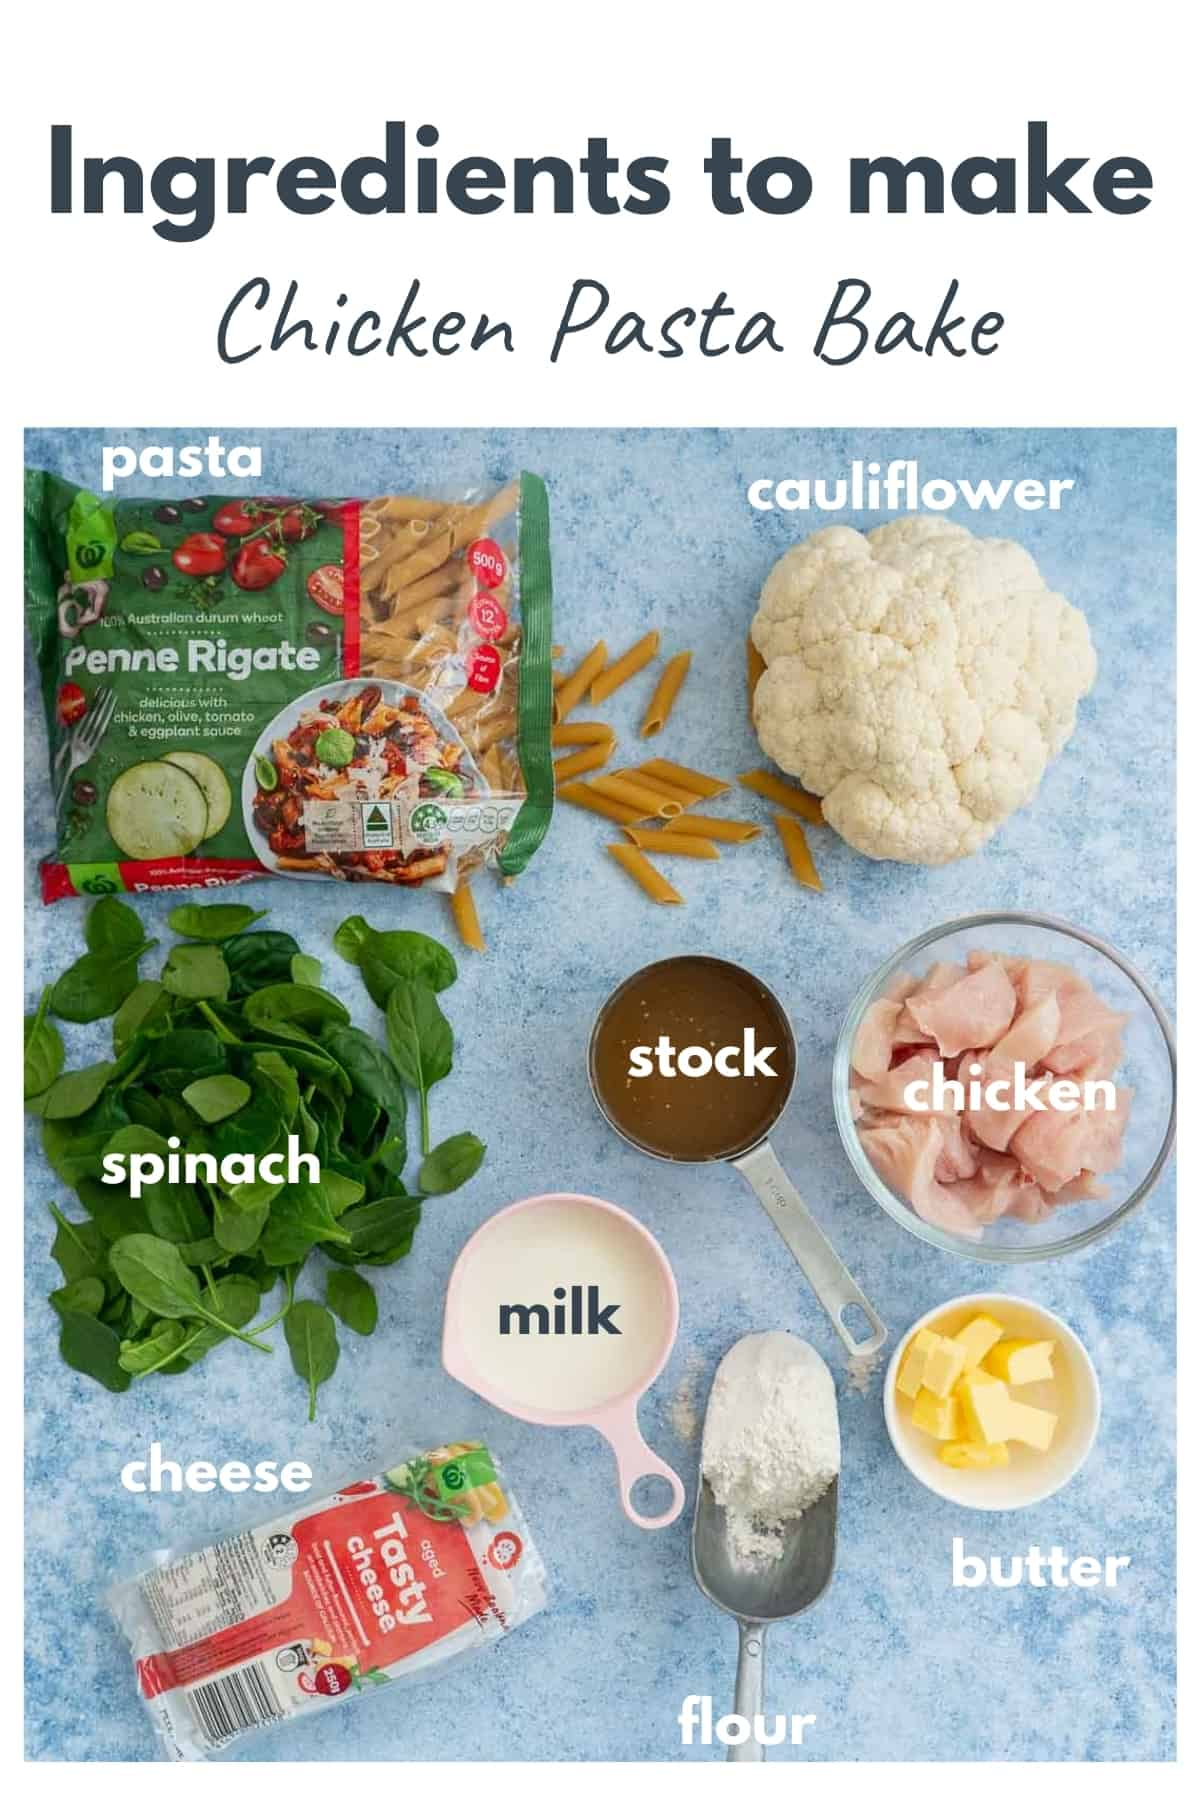 The ingredients to make chicken pasta bake laid out on a blue bench top with text overlay.